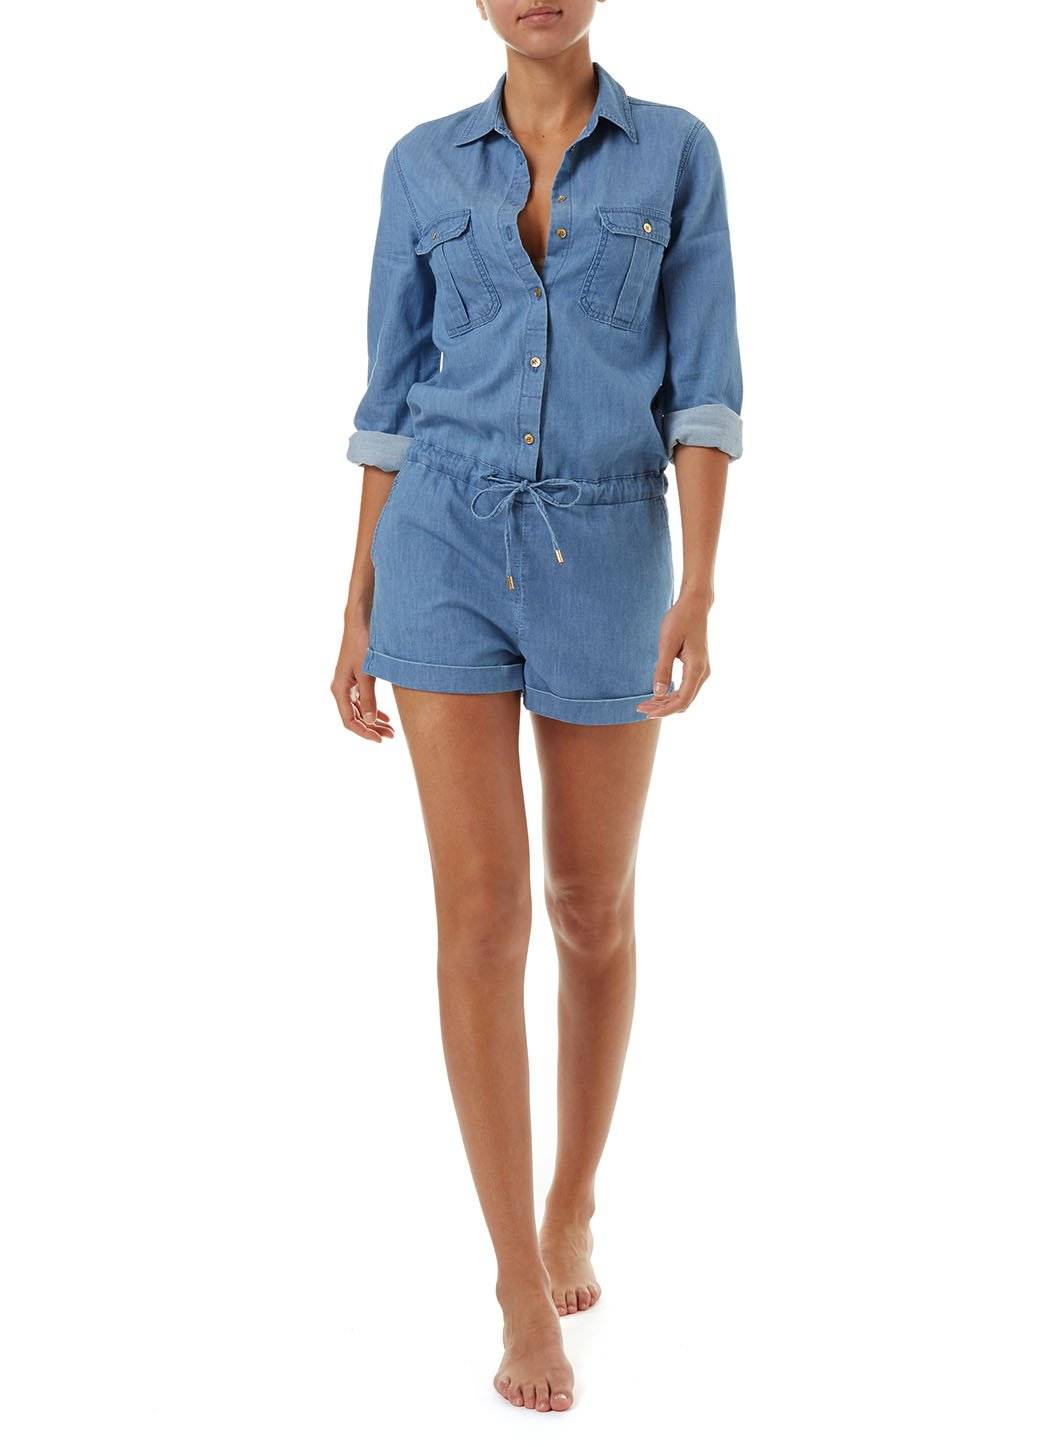 honour blue denim utility playsuit 2019 F